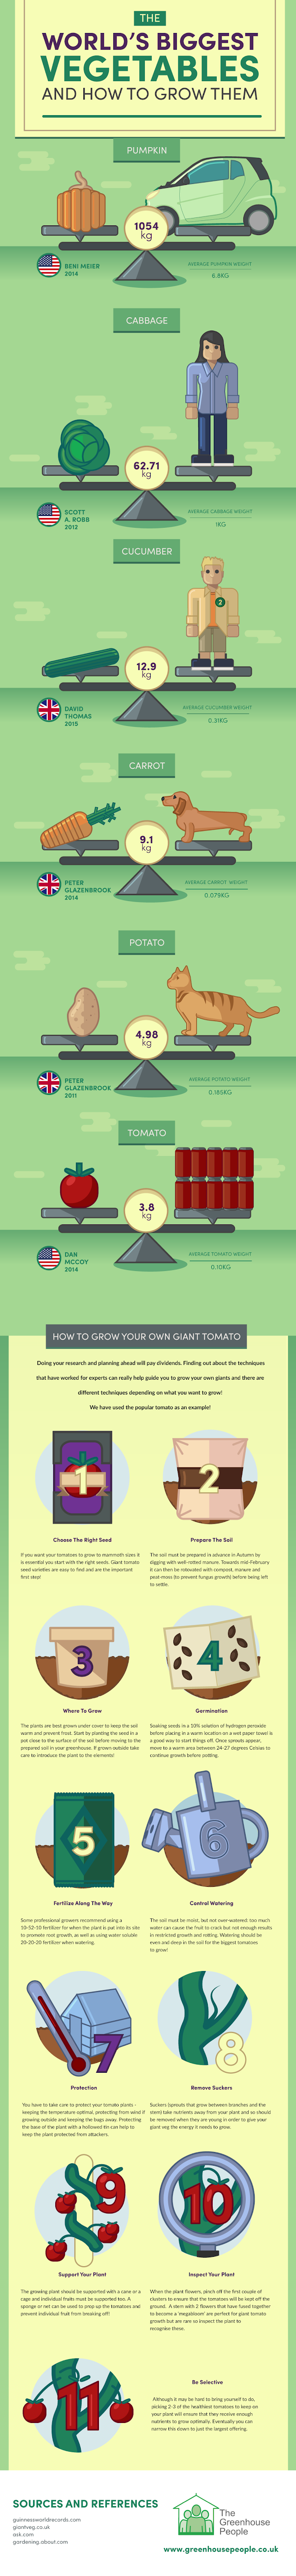 The worlds biggest vegetables And How To Grow Them #infographic #Vegetables #Food #Biggest Vegetables #World